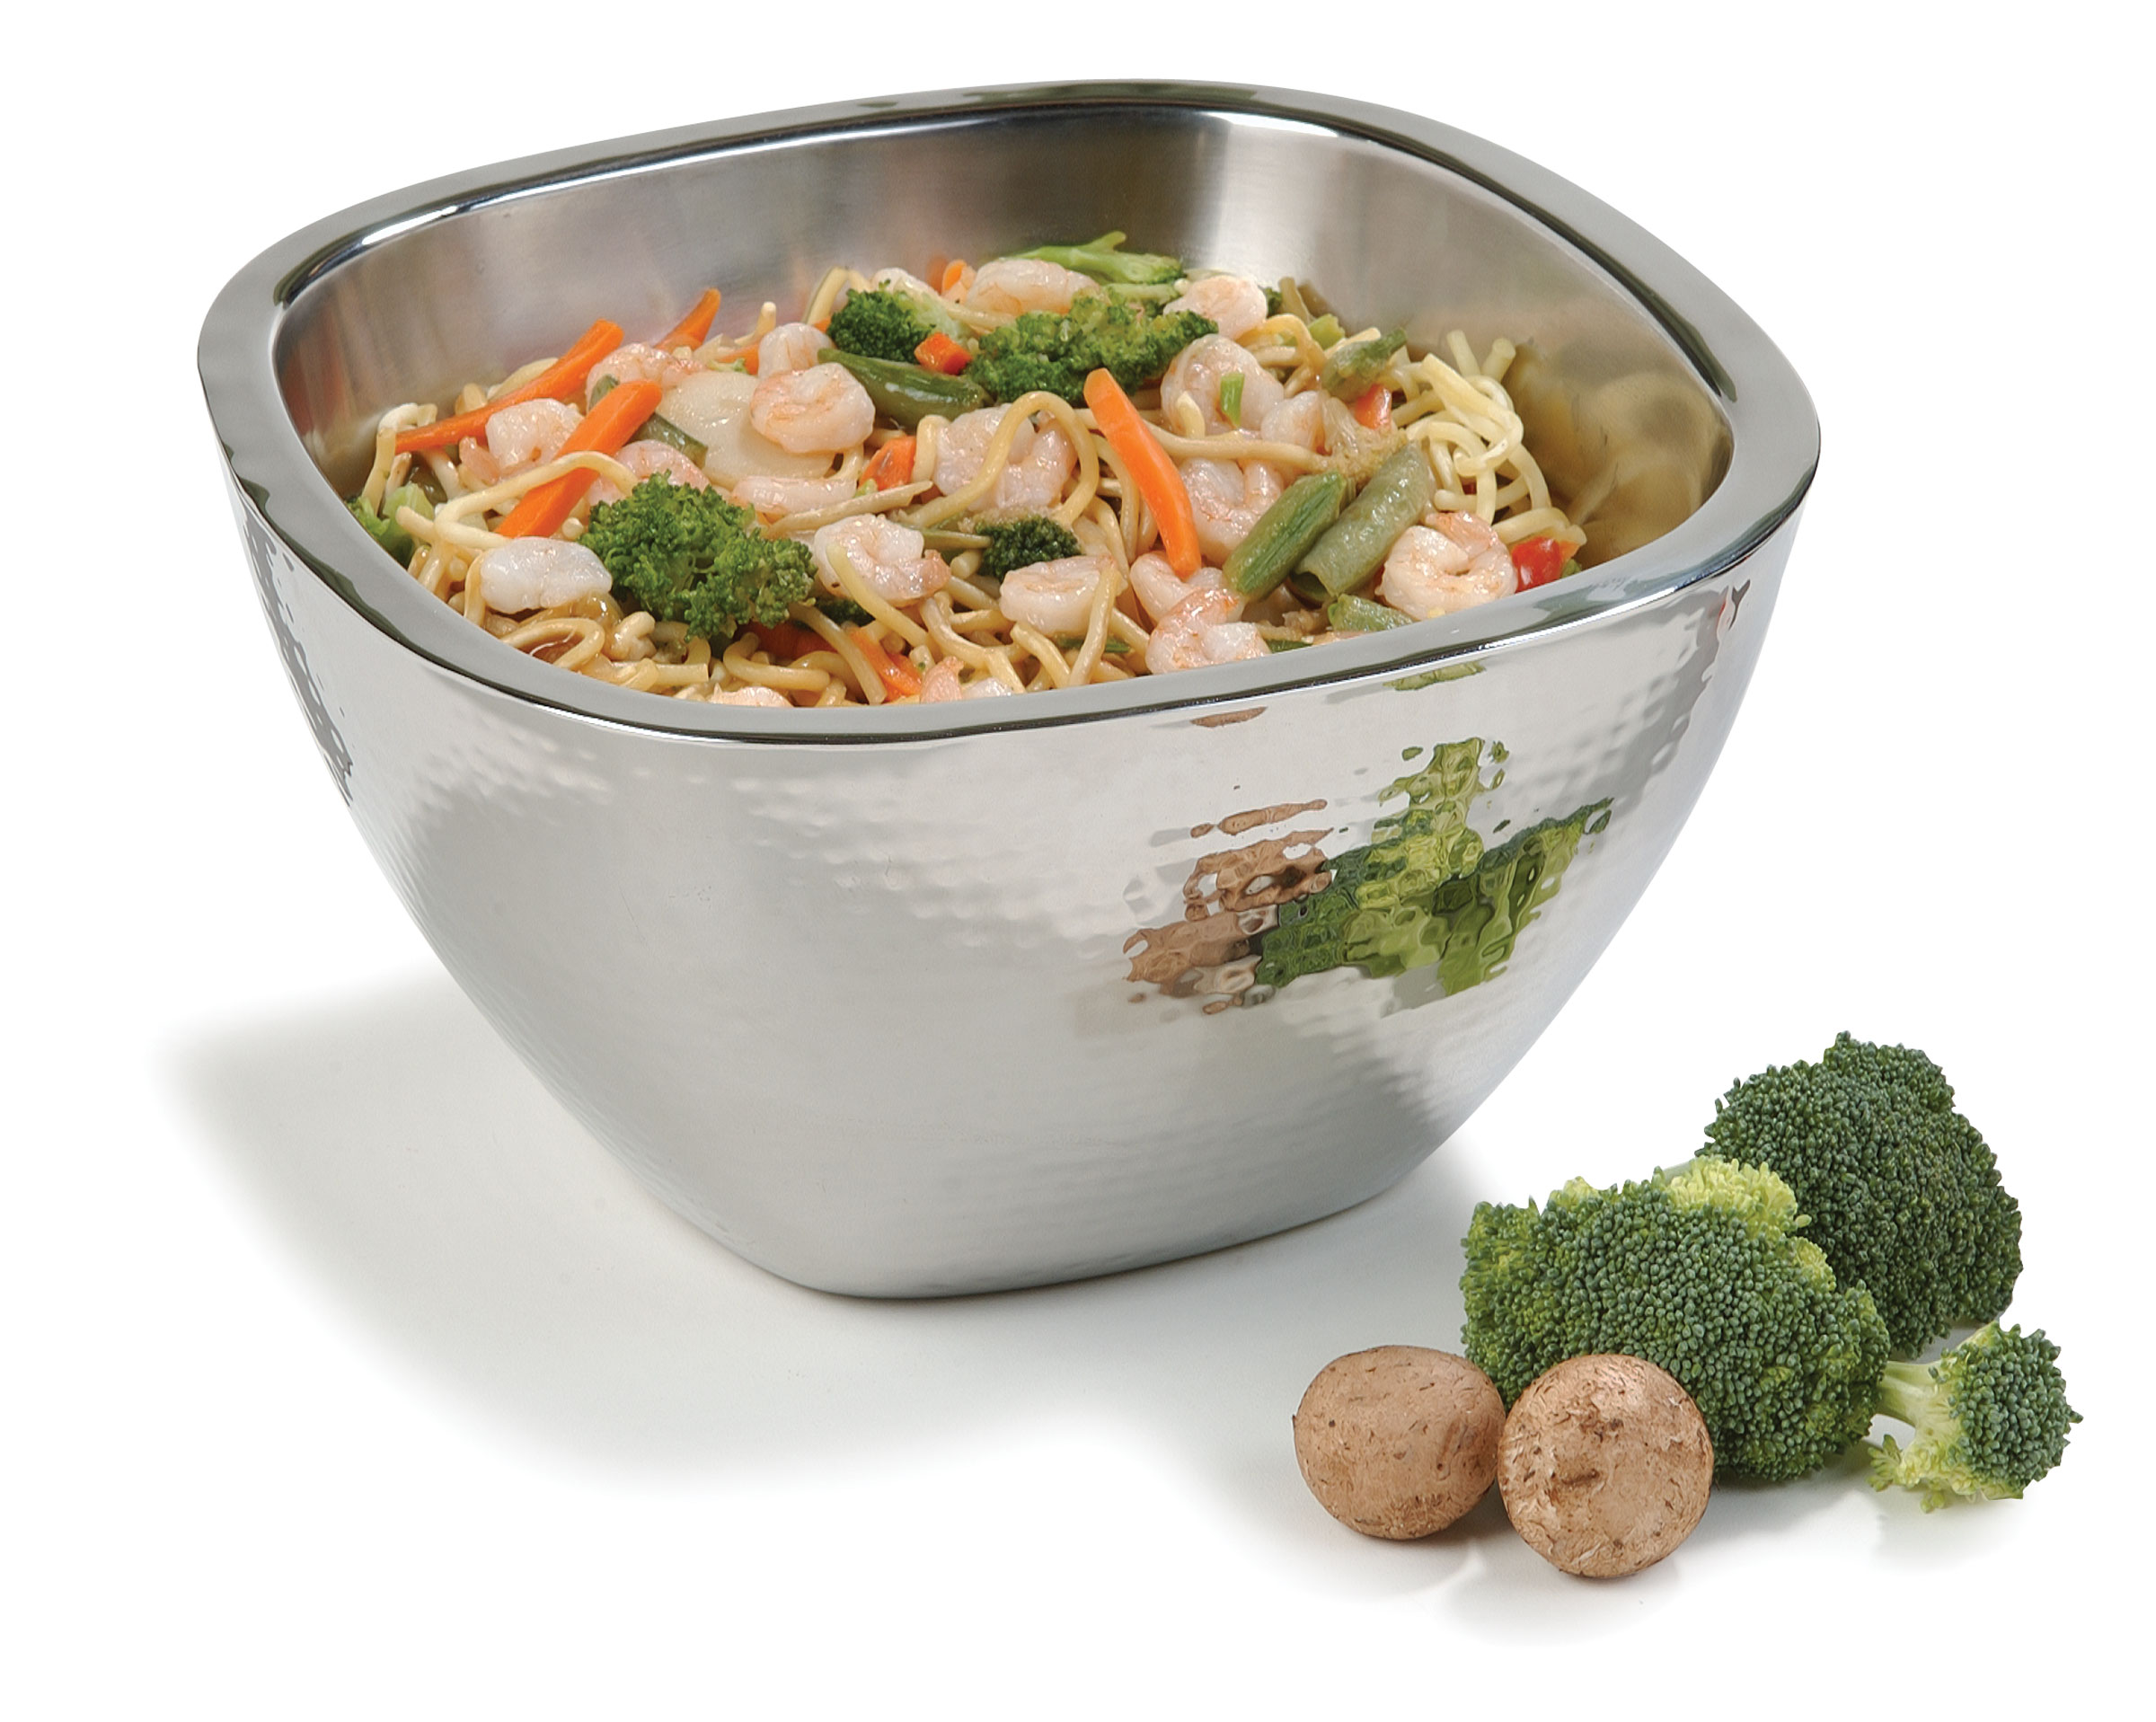 S/STEEL SERVING BOWL SQUARE - 260mm